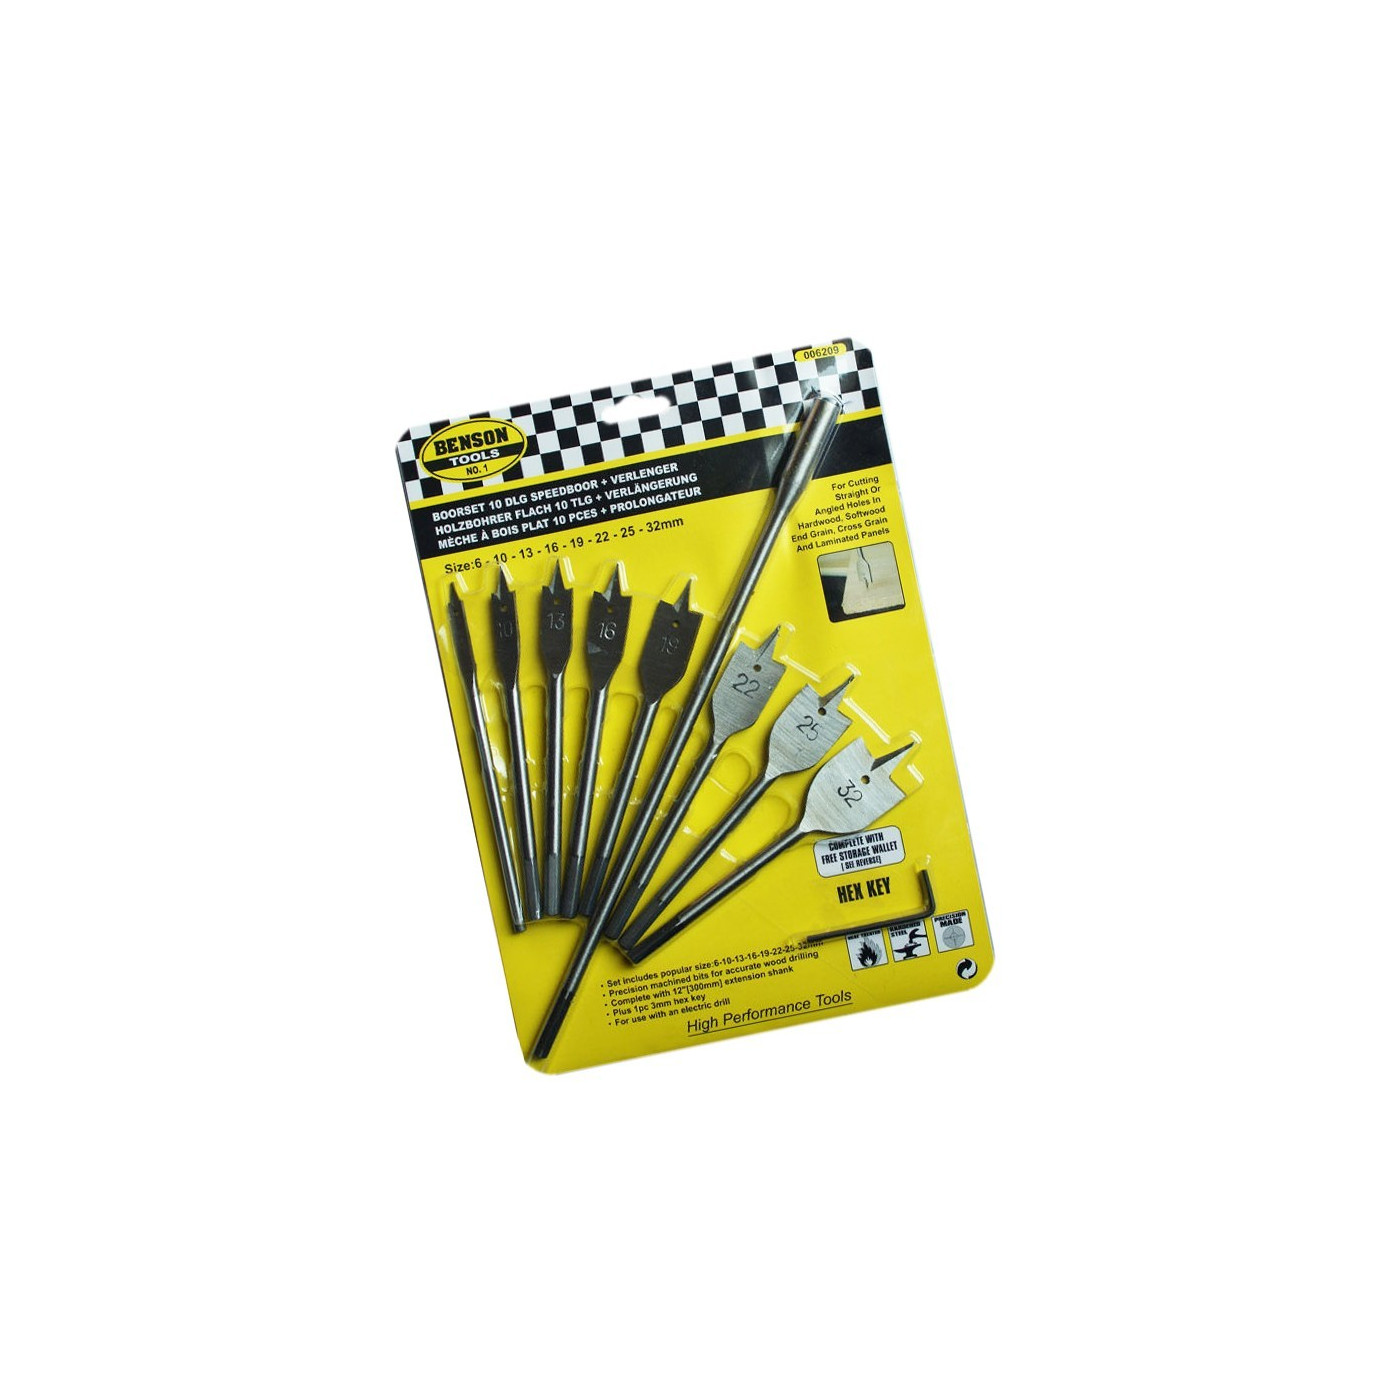 Set of 8 flatbit wood drills with extension (6-32 mm)